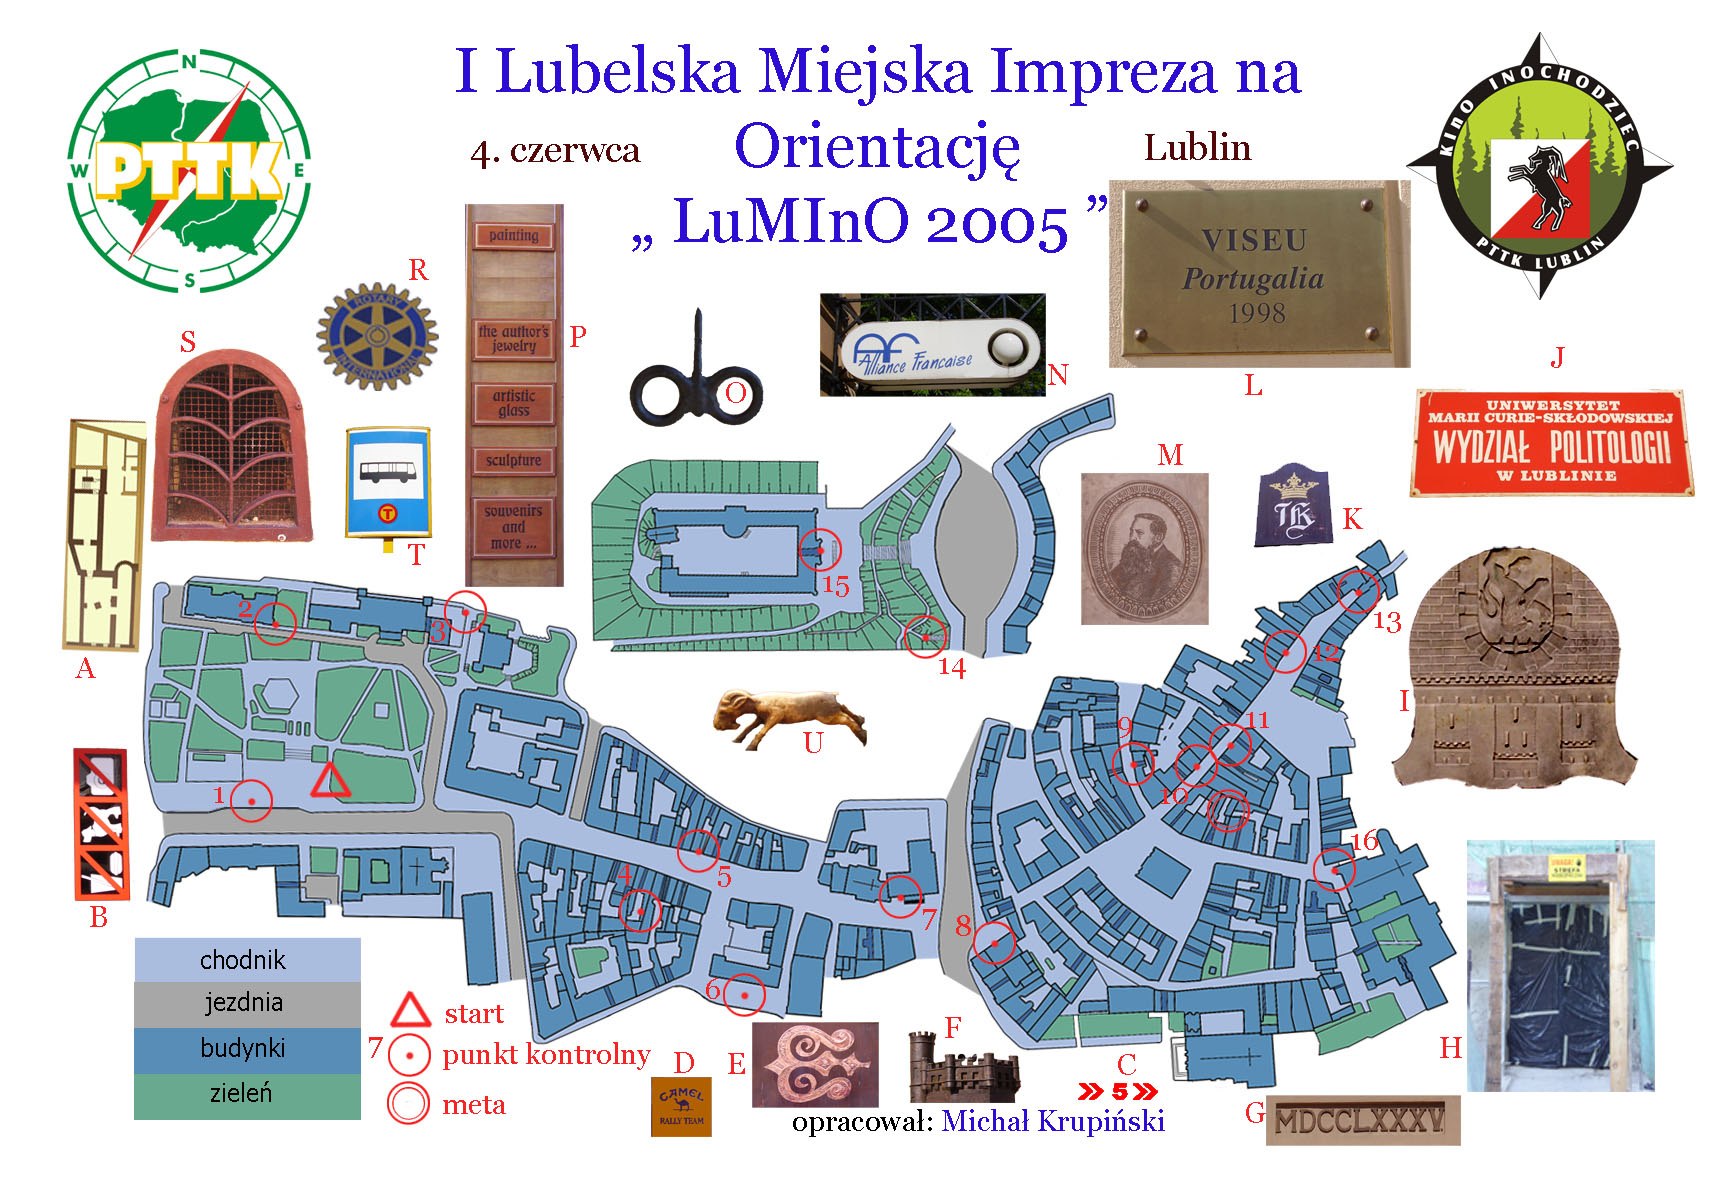 Photo orienteering in Lublin - Poland